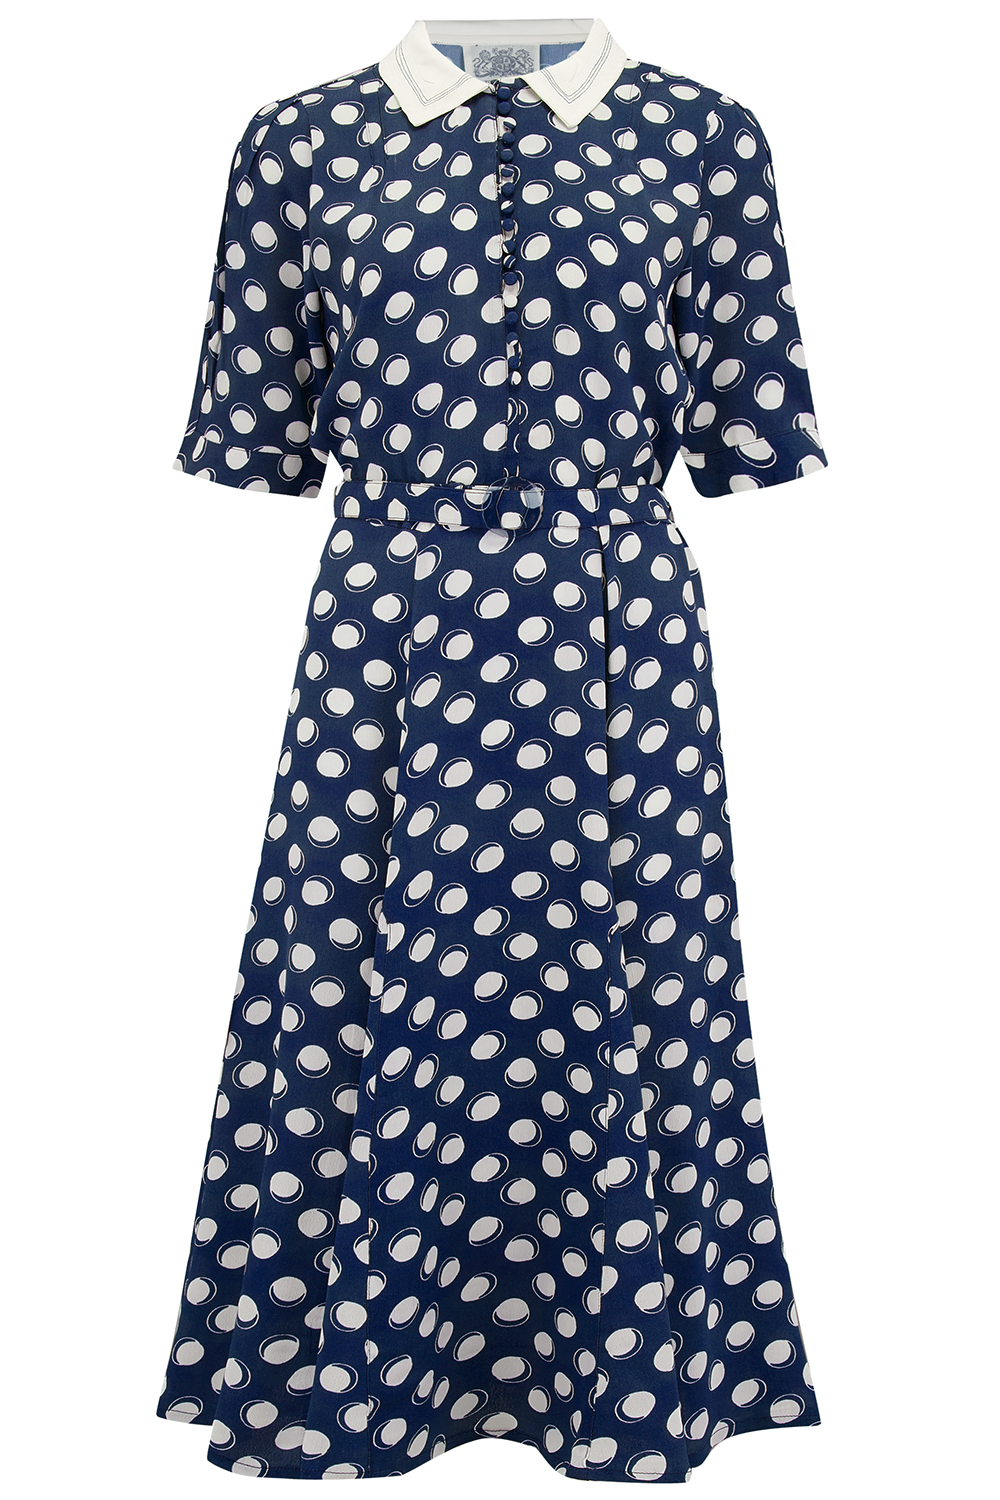 1930s Dresses | 30s Art Deco Dress Lucy Dress in Navy Moonshine Spot Authentic  Classic 1940s True Vintage Inspired Style £79.00 AT vintagedancer.com